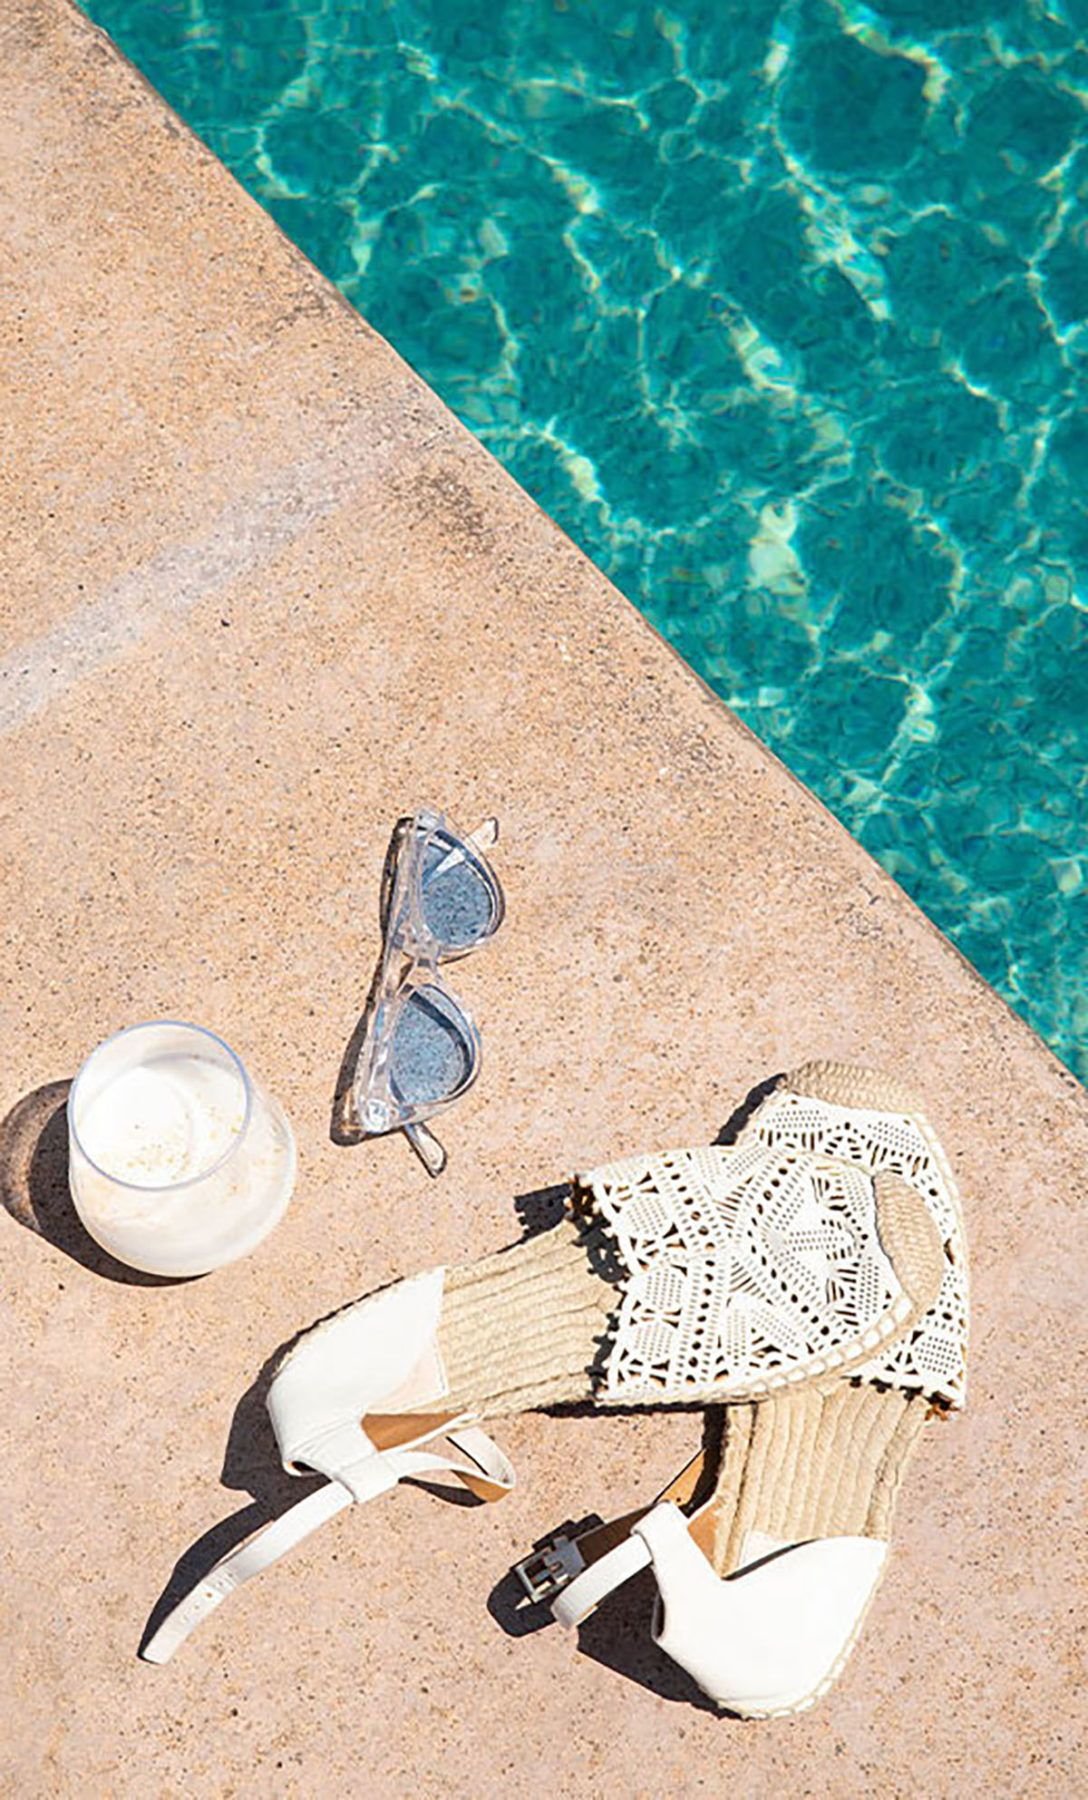 sunglasses and frozen drink next to the pool